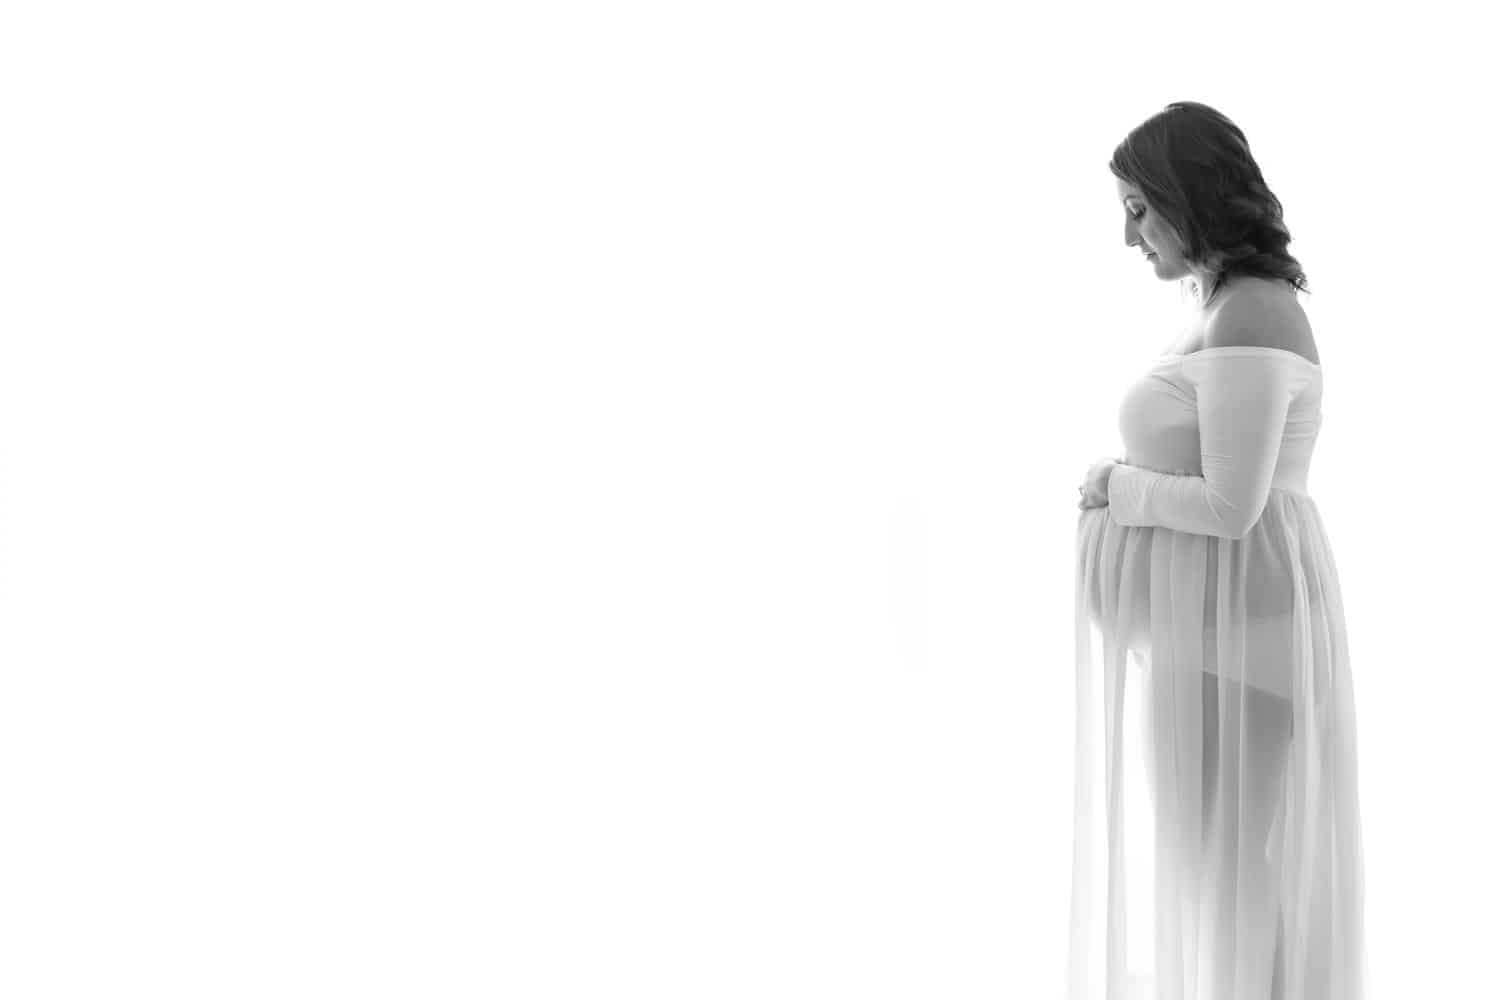 Pregnant woman wearing white dress on white background